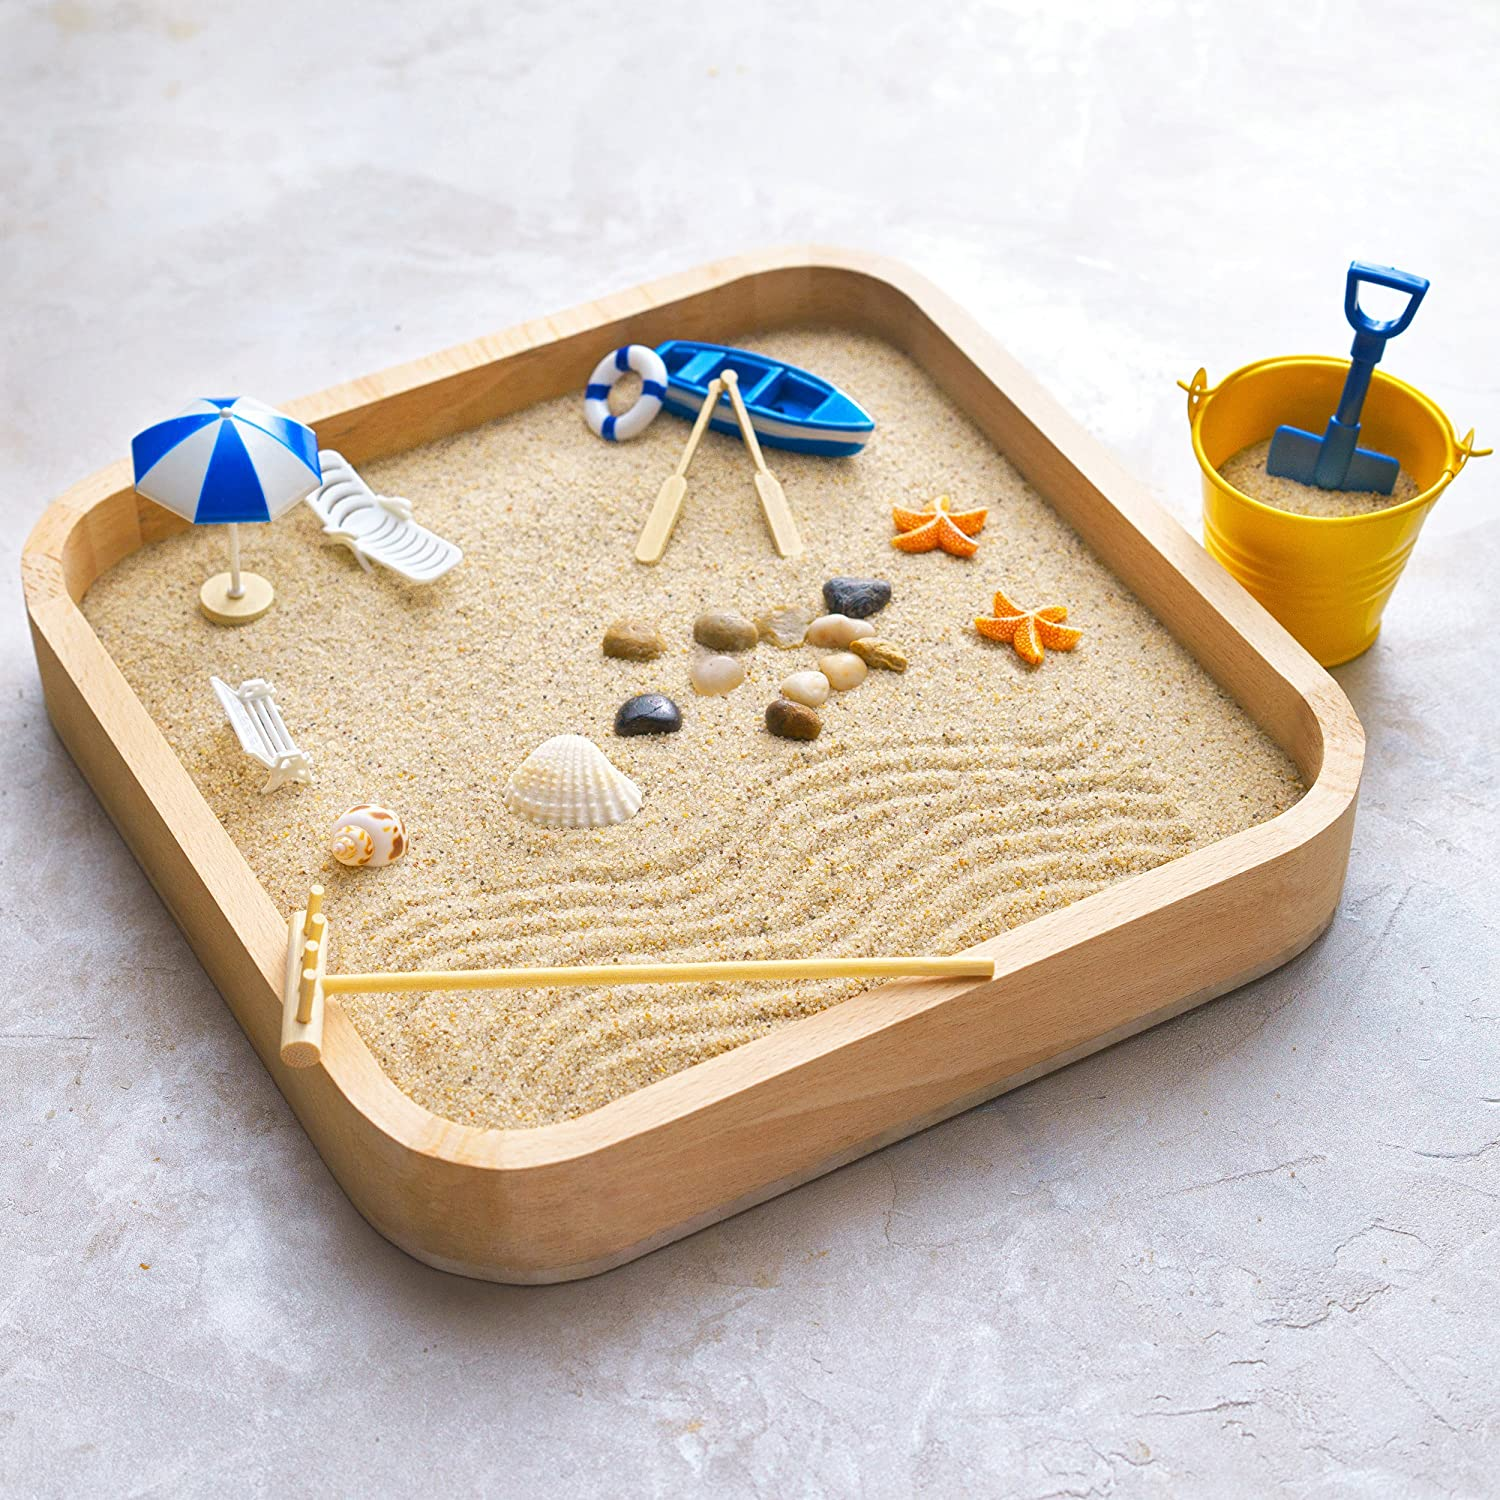 Kenley Mini Sandbox for Desk - Miniature Beach & Zen Garden - Sand Toys Play Kit for Kids, Adults, Desktop, Office - Sand Box Gift Set with Natural Sand, Wooden Tray, Lid, Rakes, Rocks & Accessories